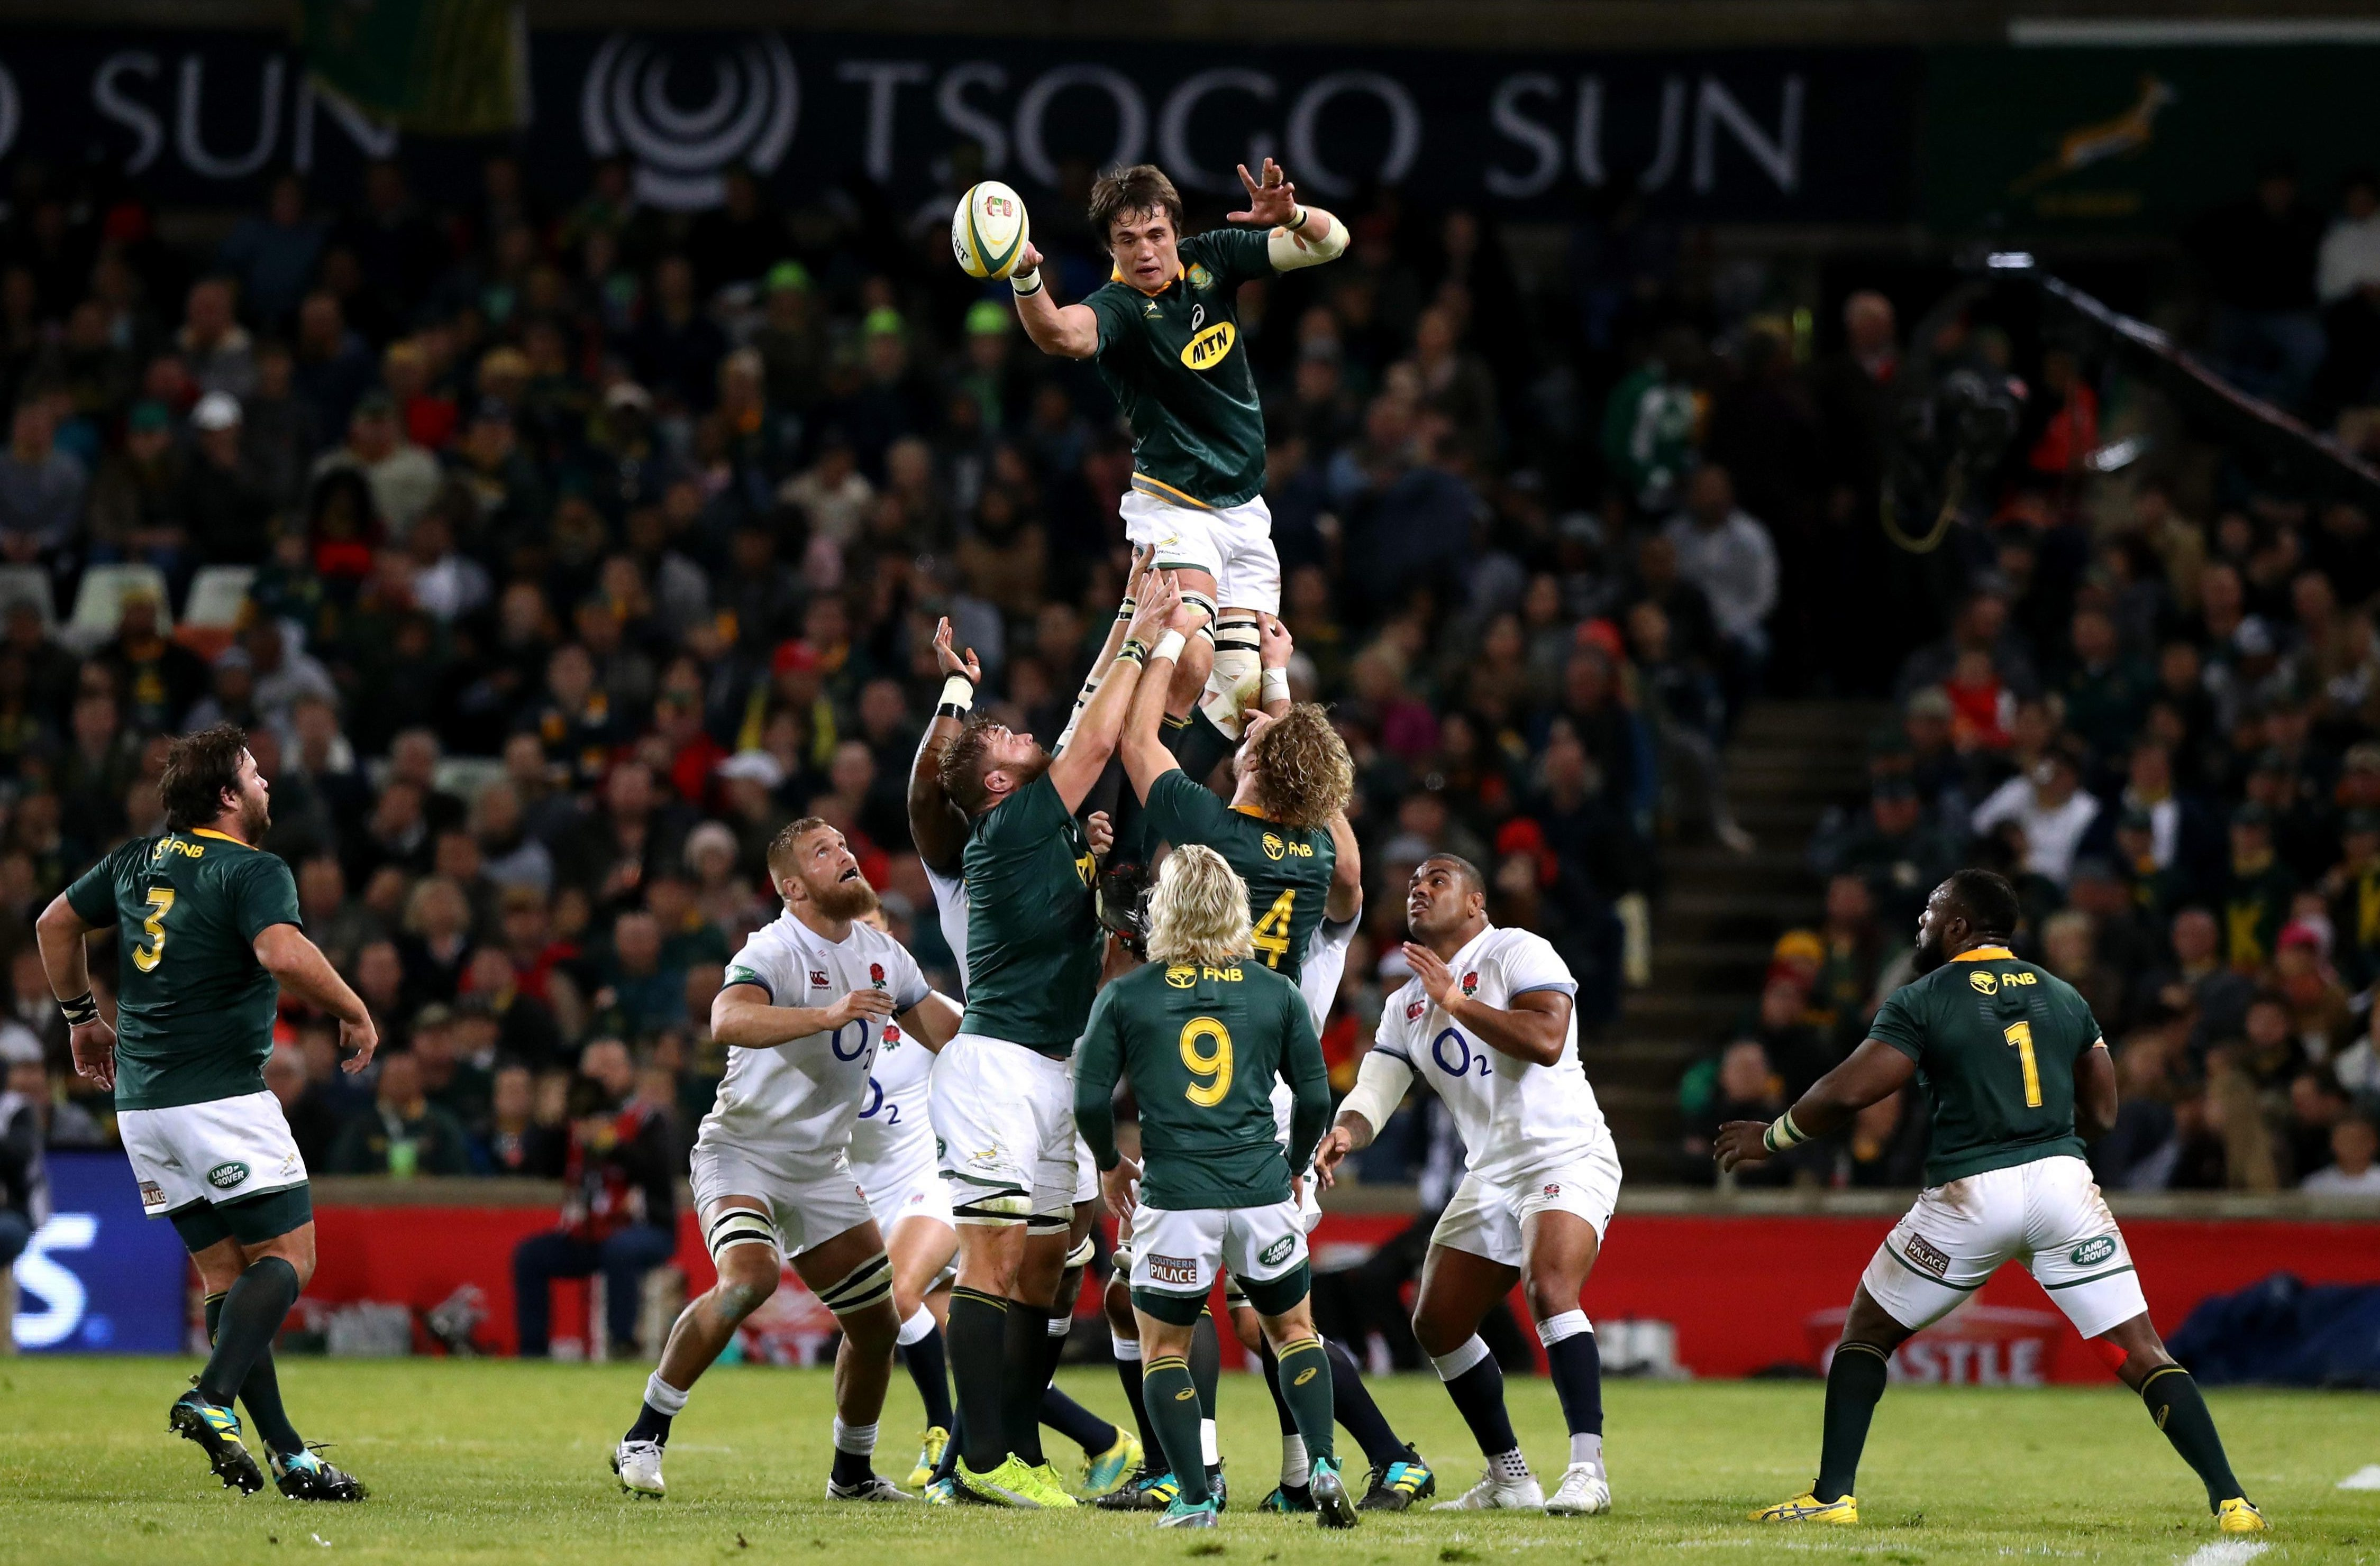 South Africa will be feeling confident of making it a hat-trick of wins